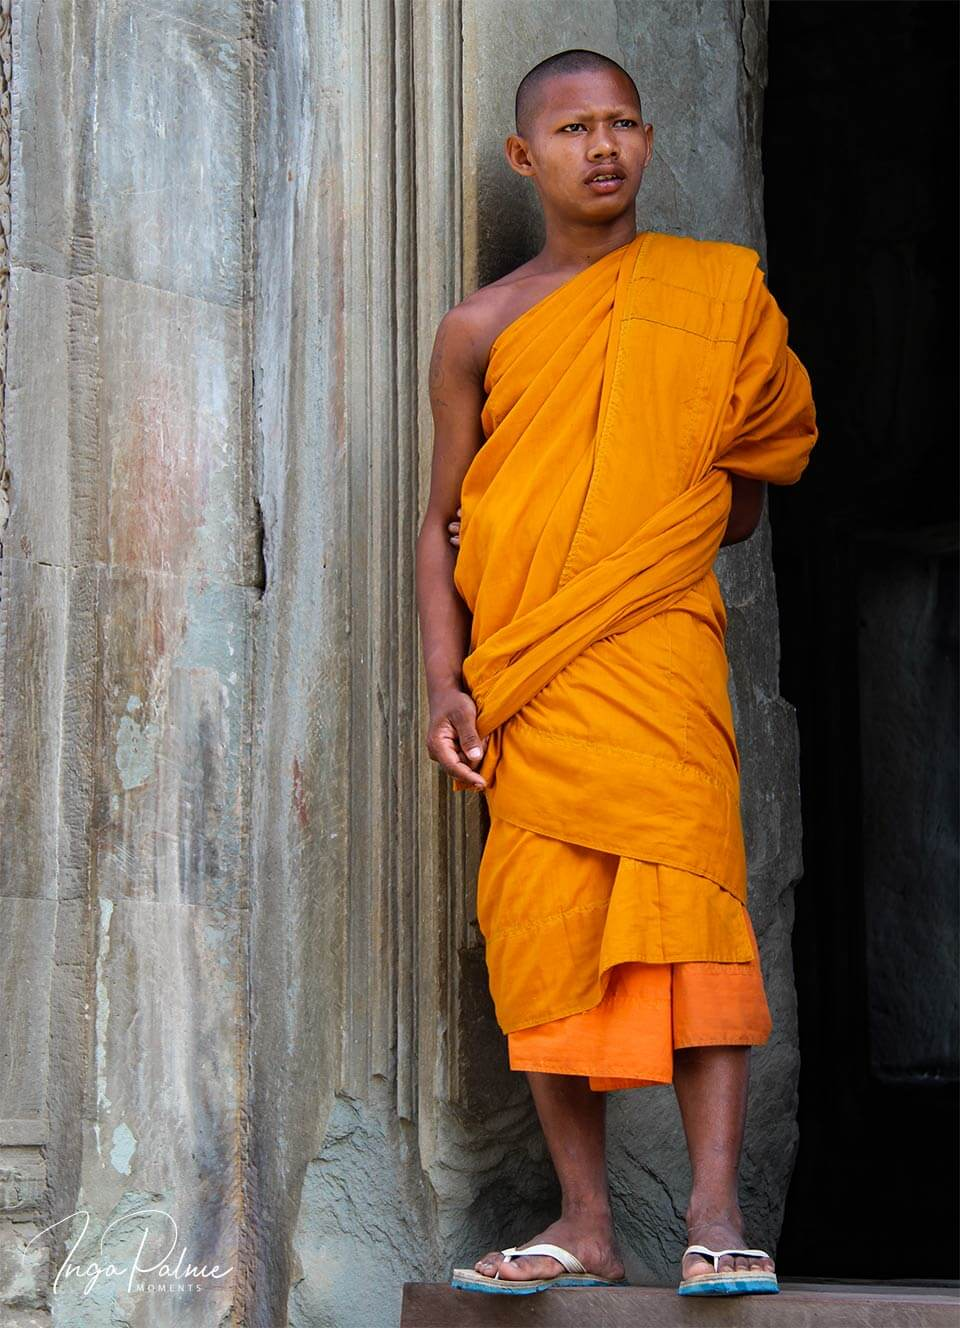 Angkor Wat - Monk posing for a photo